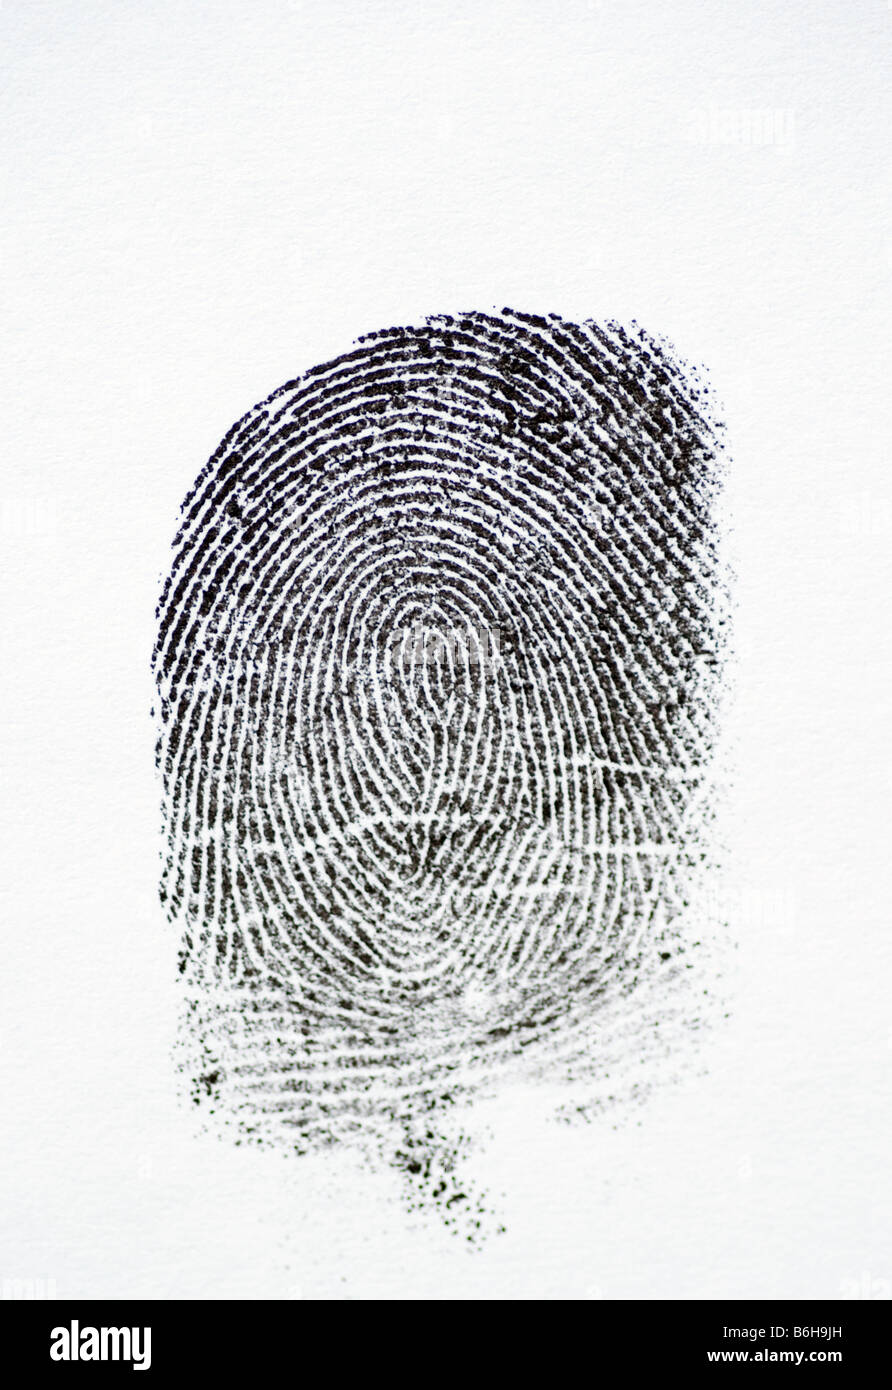 Fingerprints with a white background - Stock Image